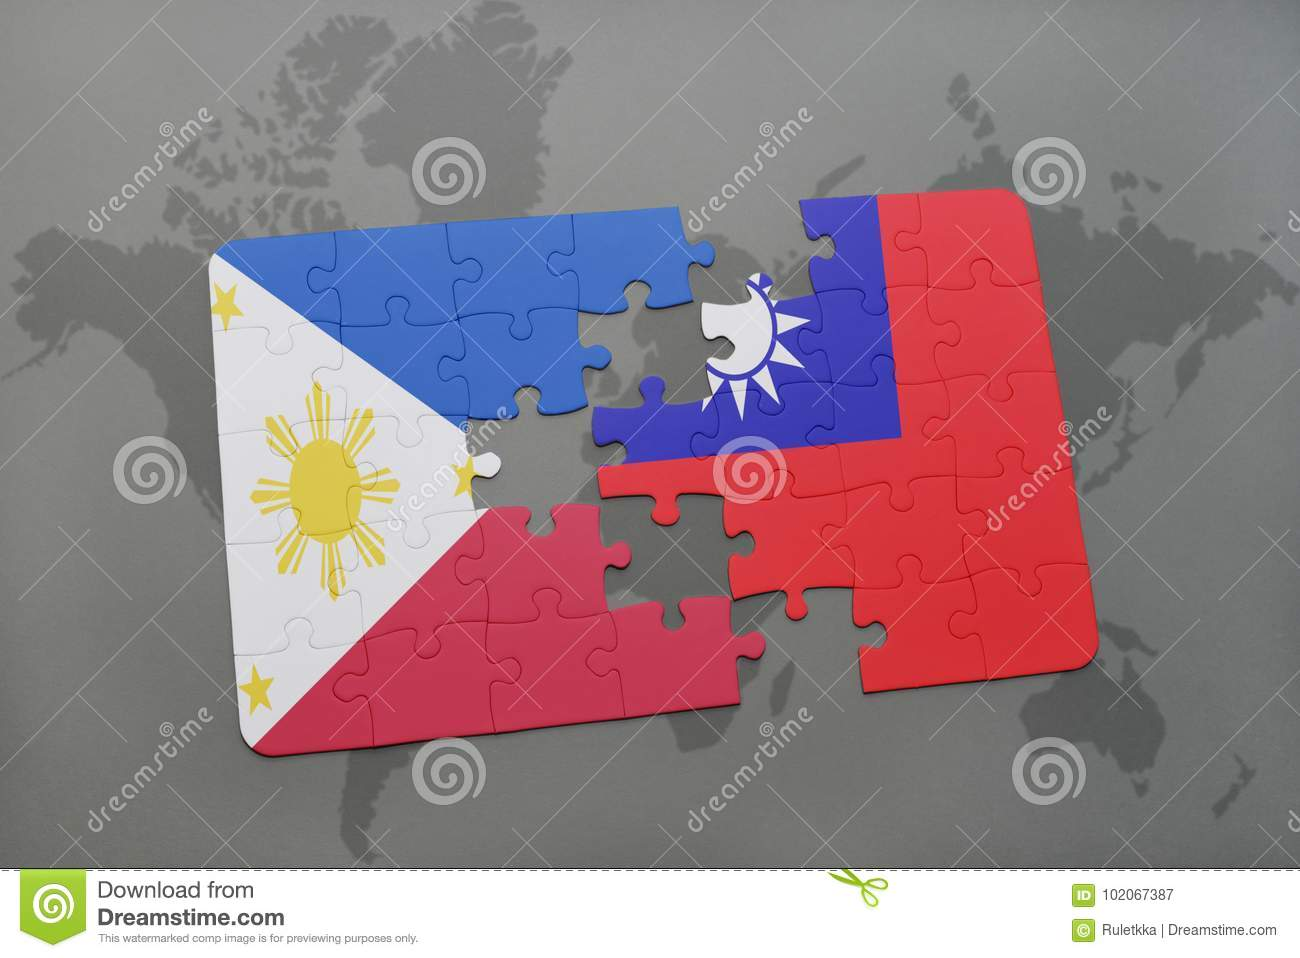 Puzzle with the national flag of philippines and taiwan on a world download puzzle with the national flag of philippines and taiwan on a world map background gumiabroncs Images